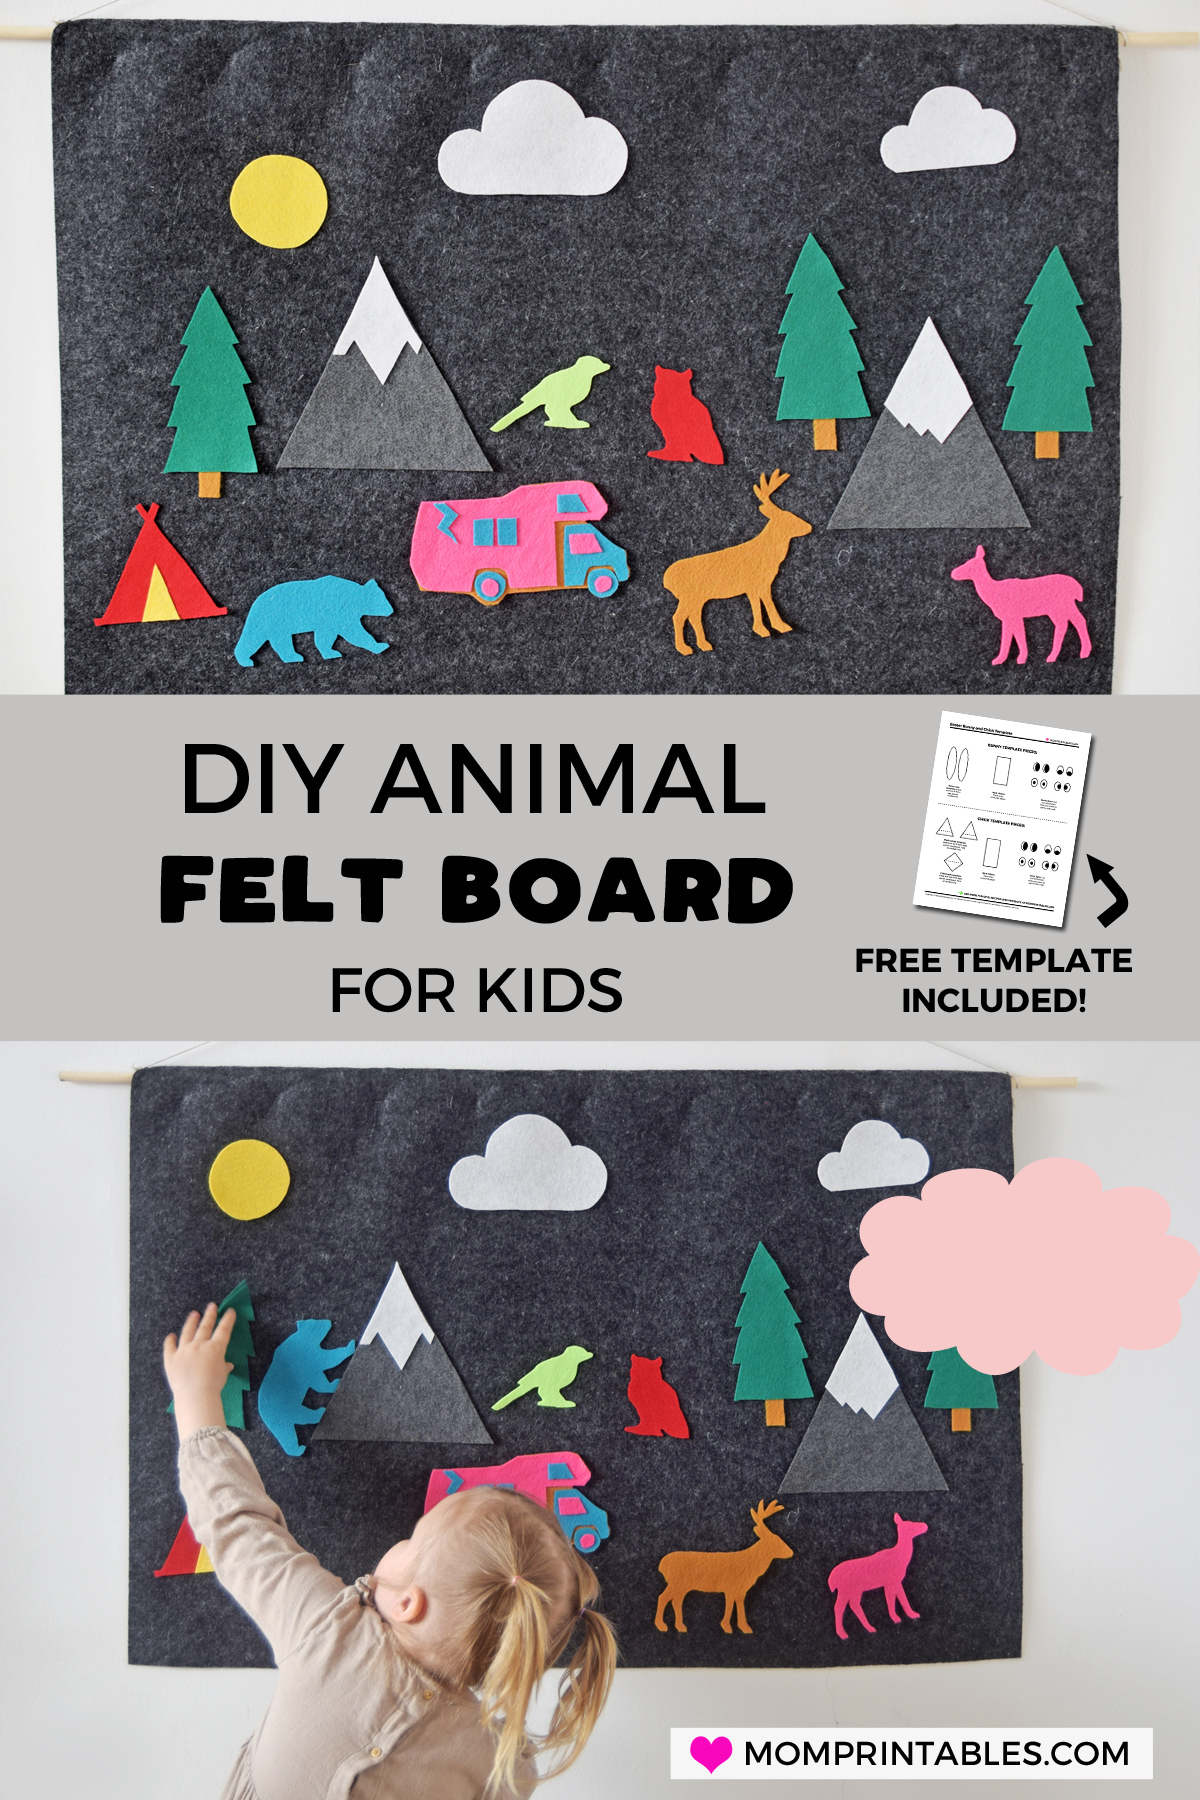 DIY Animal Felt Board For Kids | toddler | stores | how to make | templates | pieces | ideas | wall | easy | activities | patterns | canvas | for kids | for toddlers | projects | shape | learning | hungry caterpillar | pictures | animals | rocky mountains |  playrooms | no sew #feltboard #kidscraft #toddlercraft #earlylearning #felt #craft #sensory